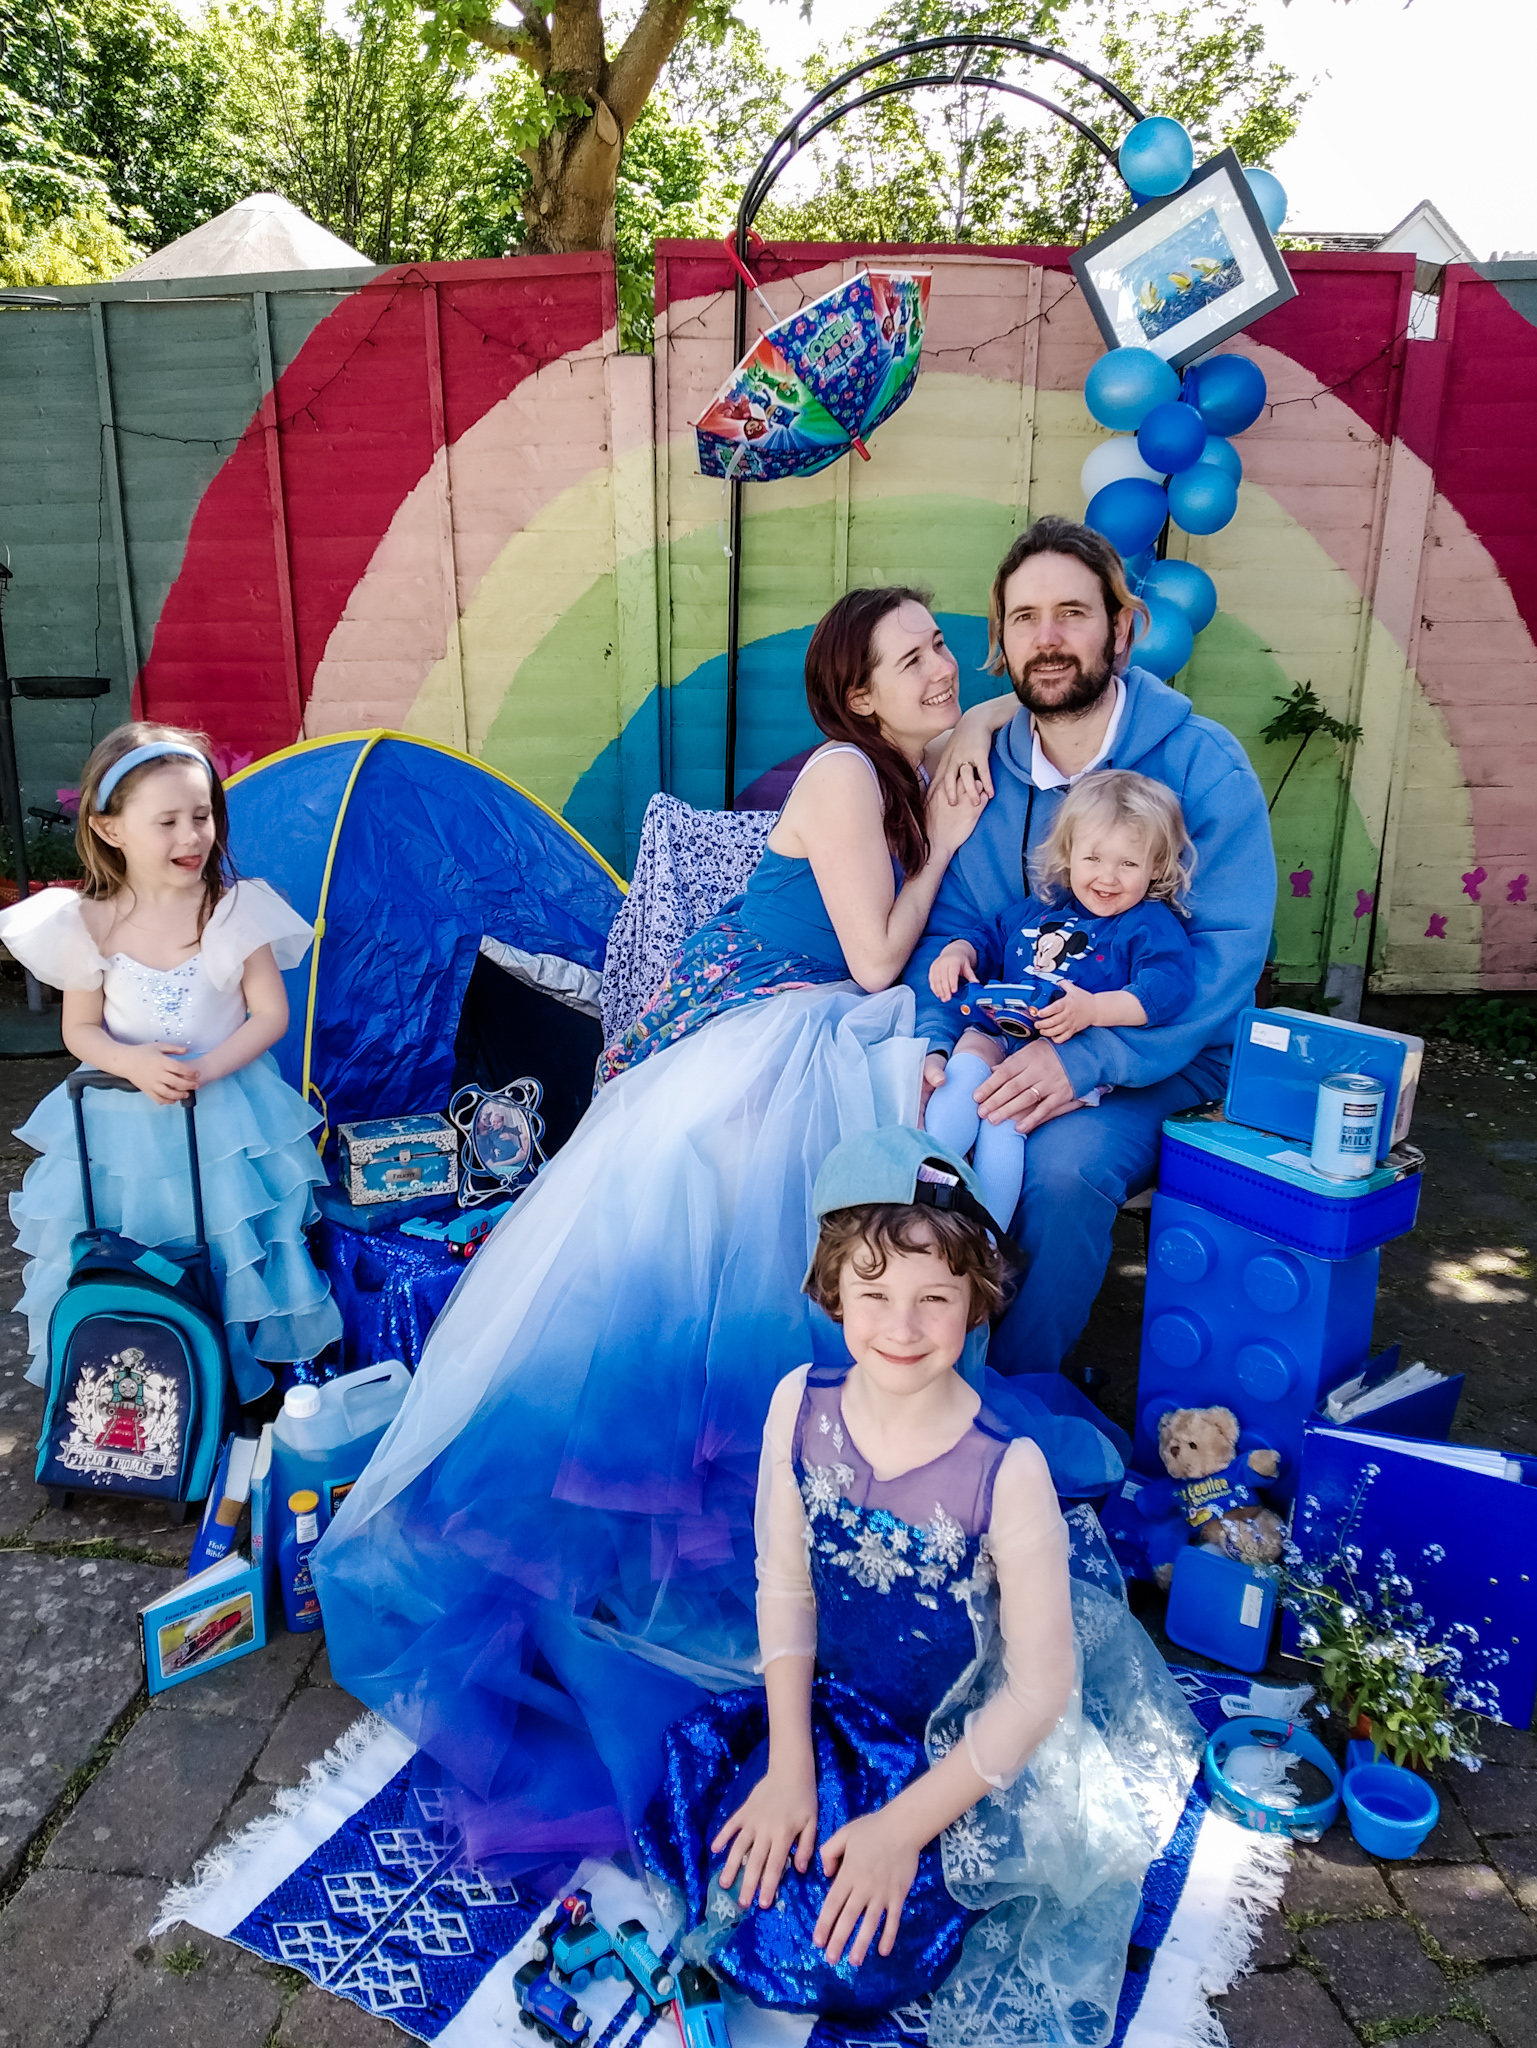 Alternative Wedding Dress Designer Who Loves Colour Has Fun In Lockdown With A Rainbow Of Family Portraits.